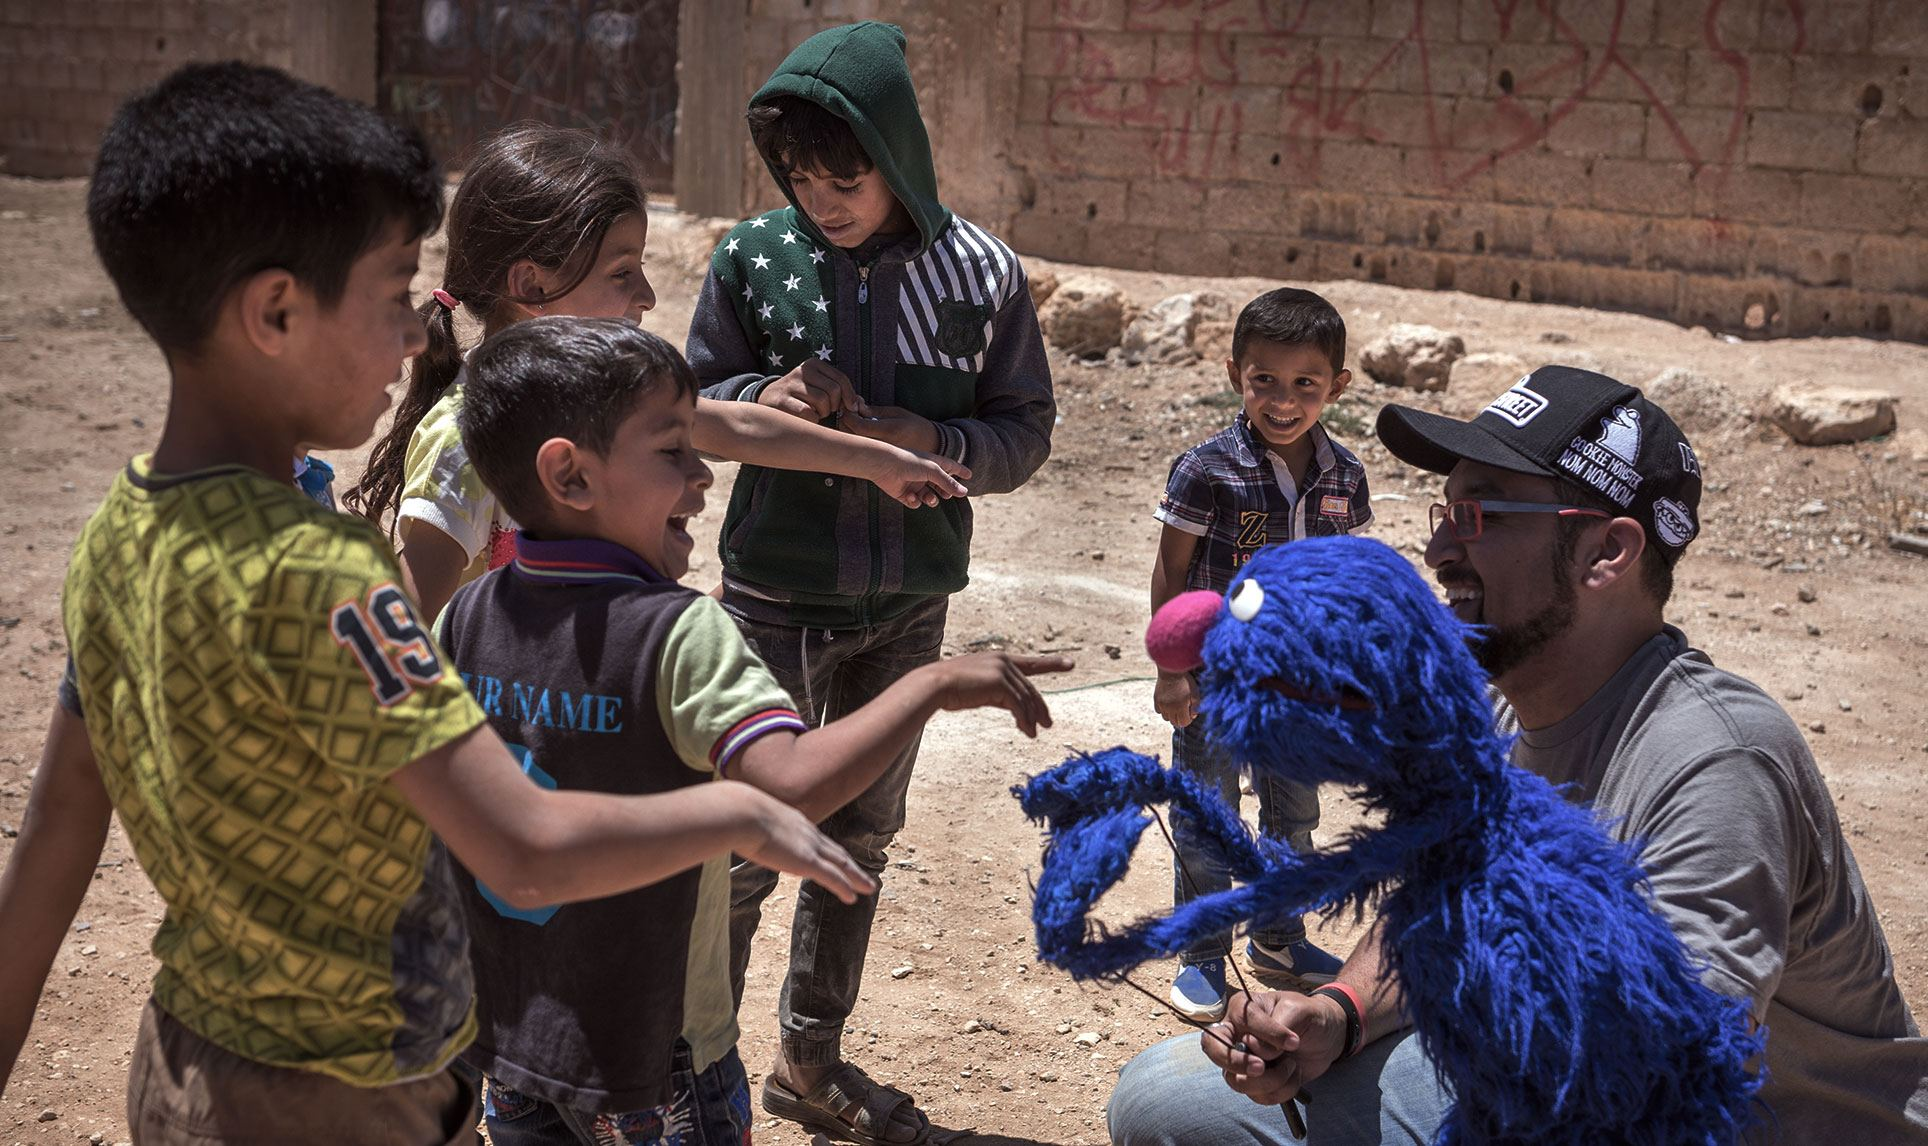 The IRC & Sesame Street are working to bring education to a generation at risk and help heal the scars of war.